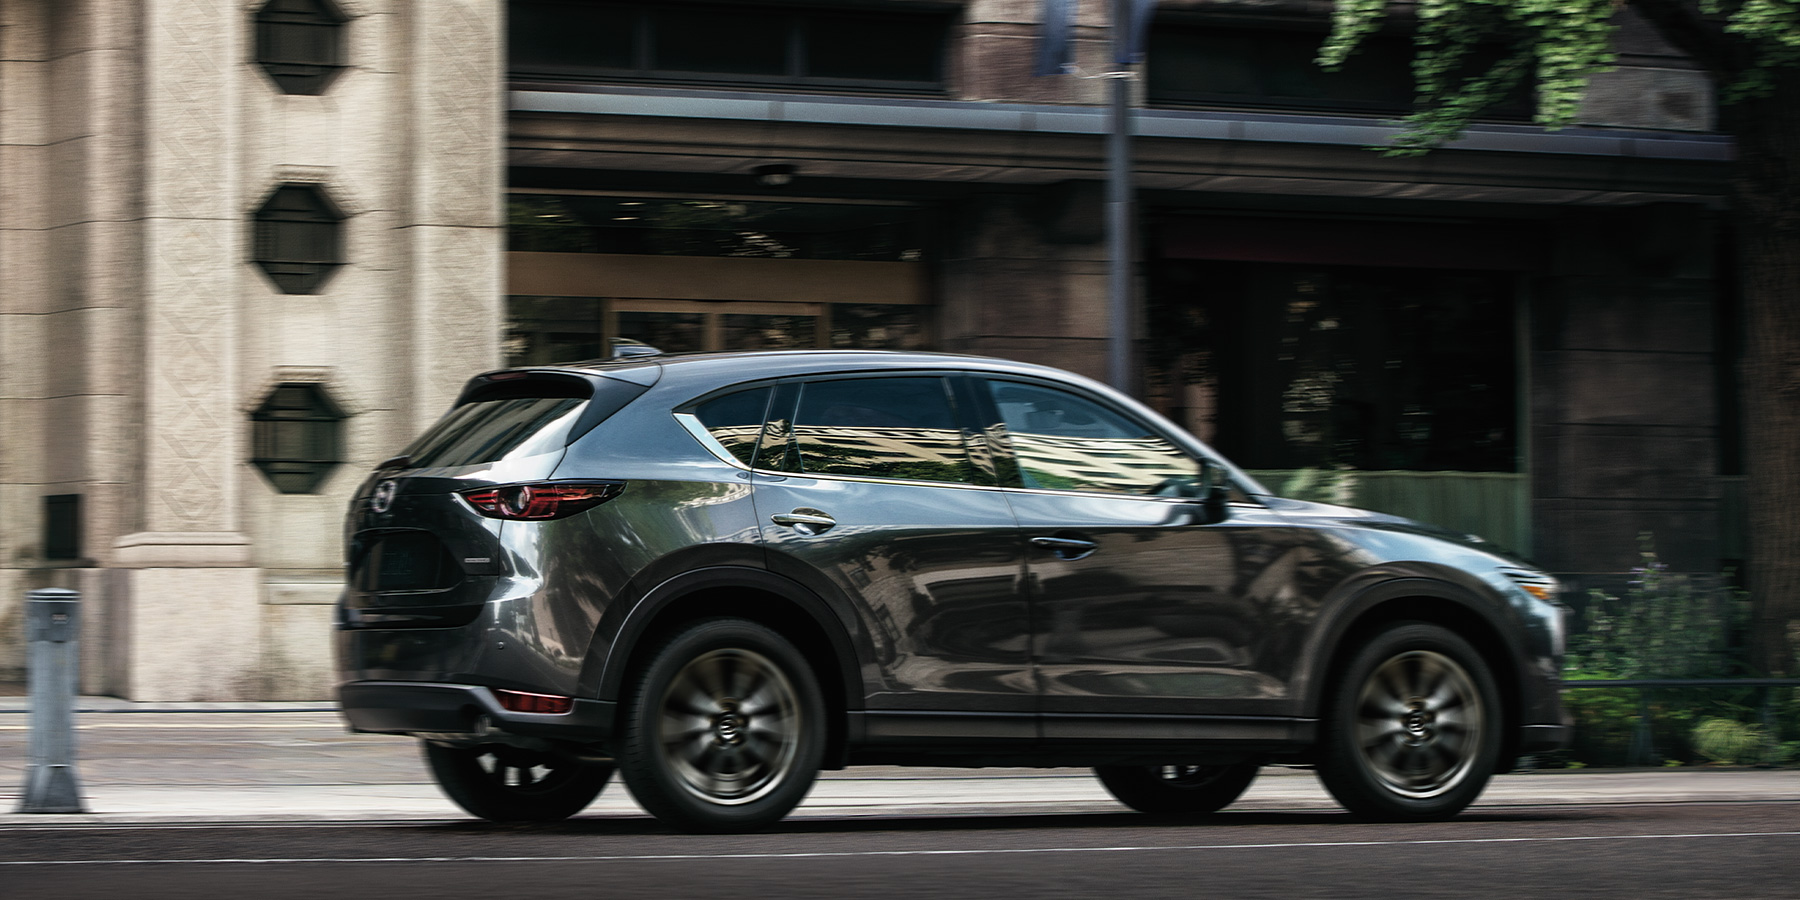 2020 Mazda CX-5 in the city